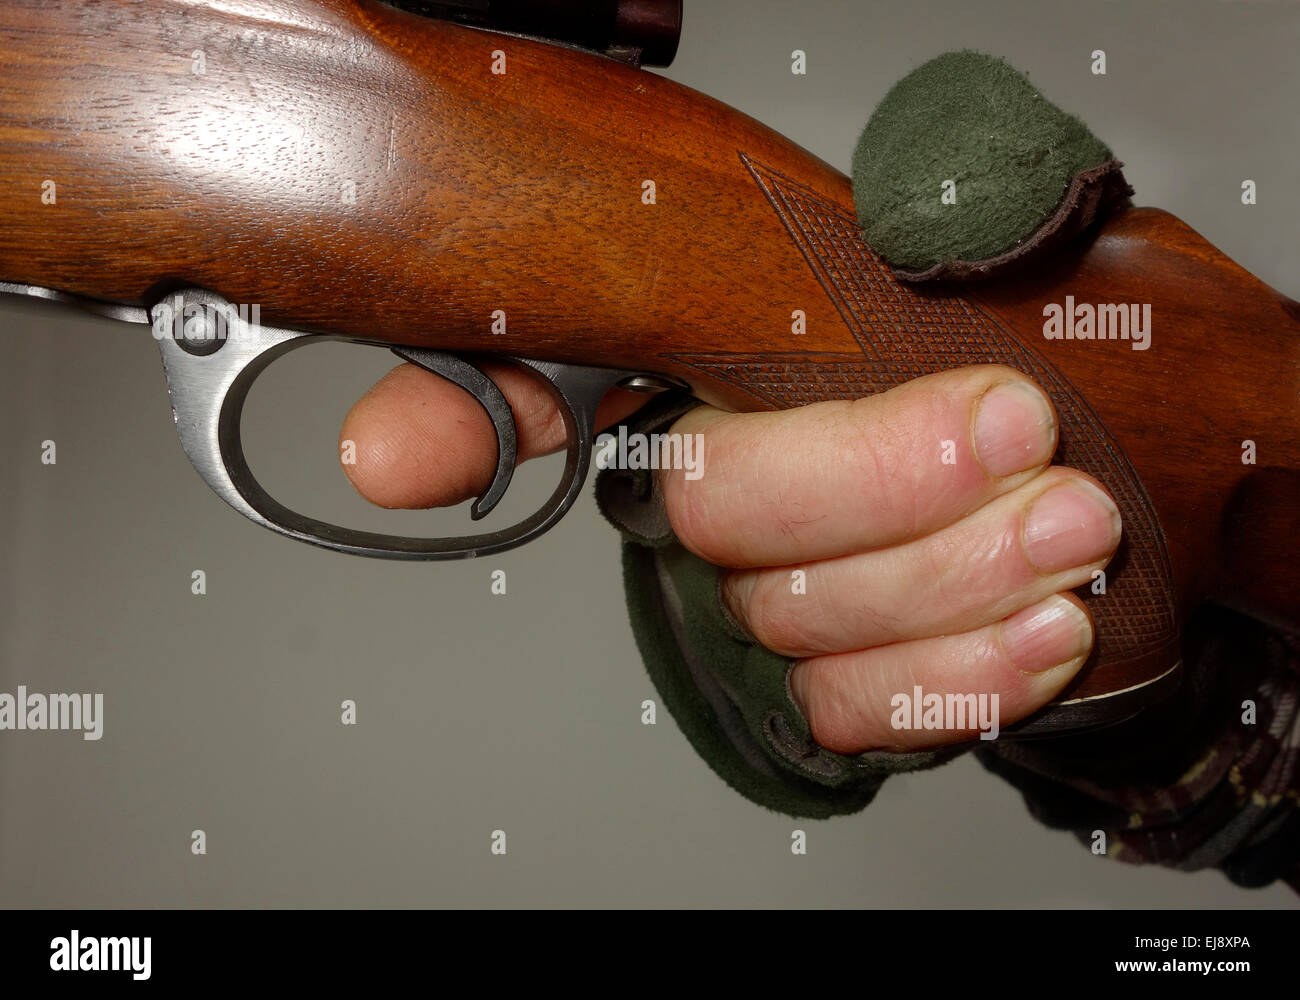 Close up of an index finger on the trigger. - Stock Image